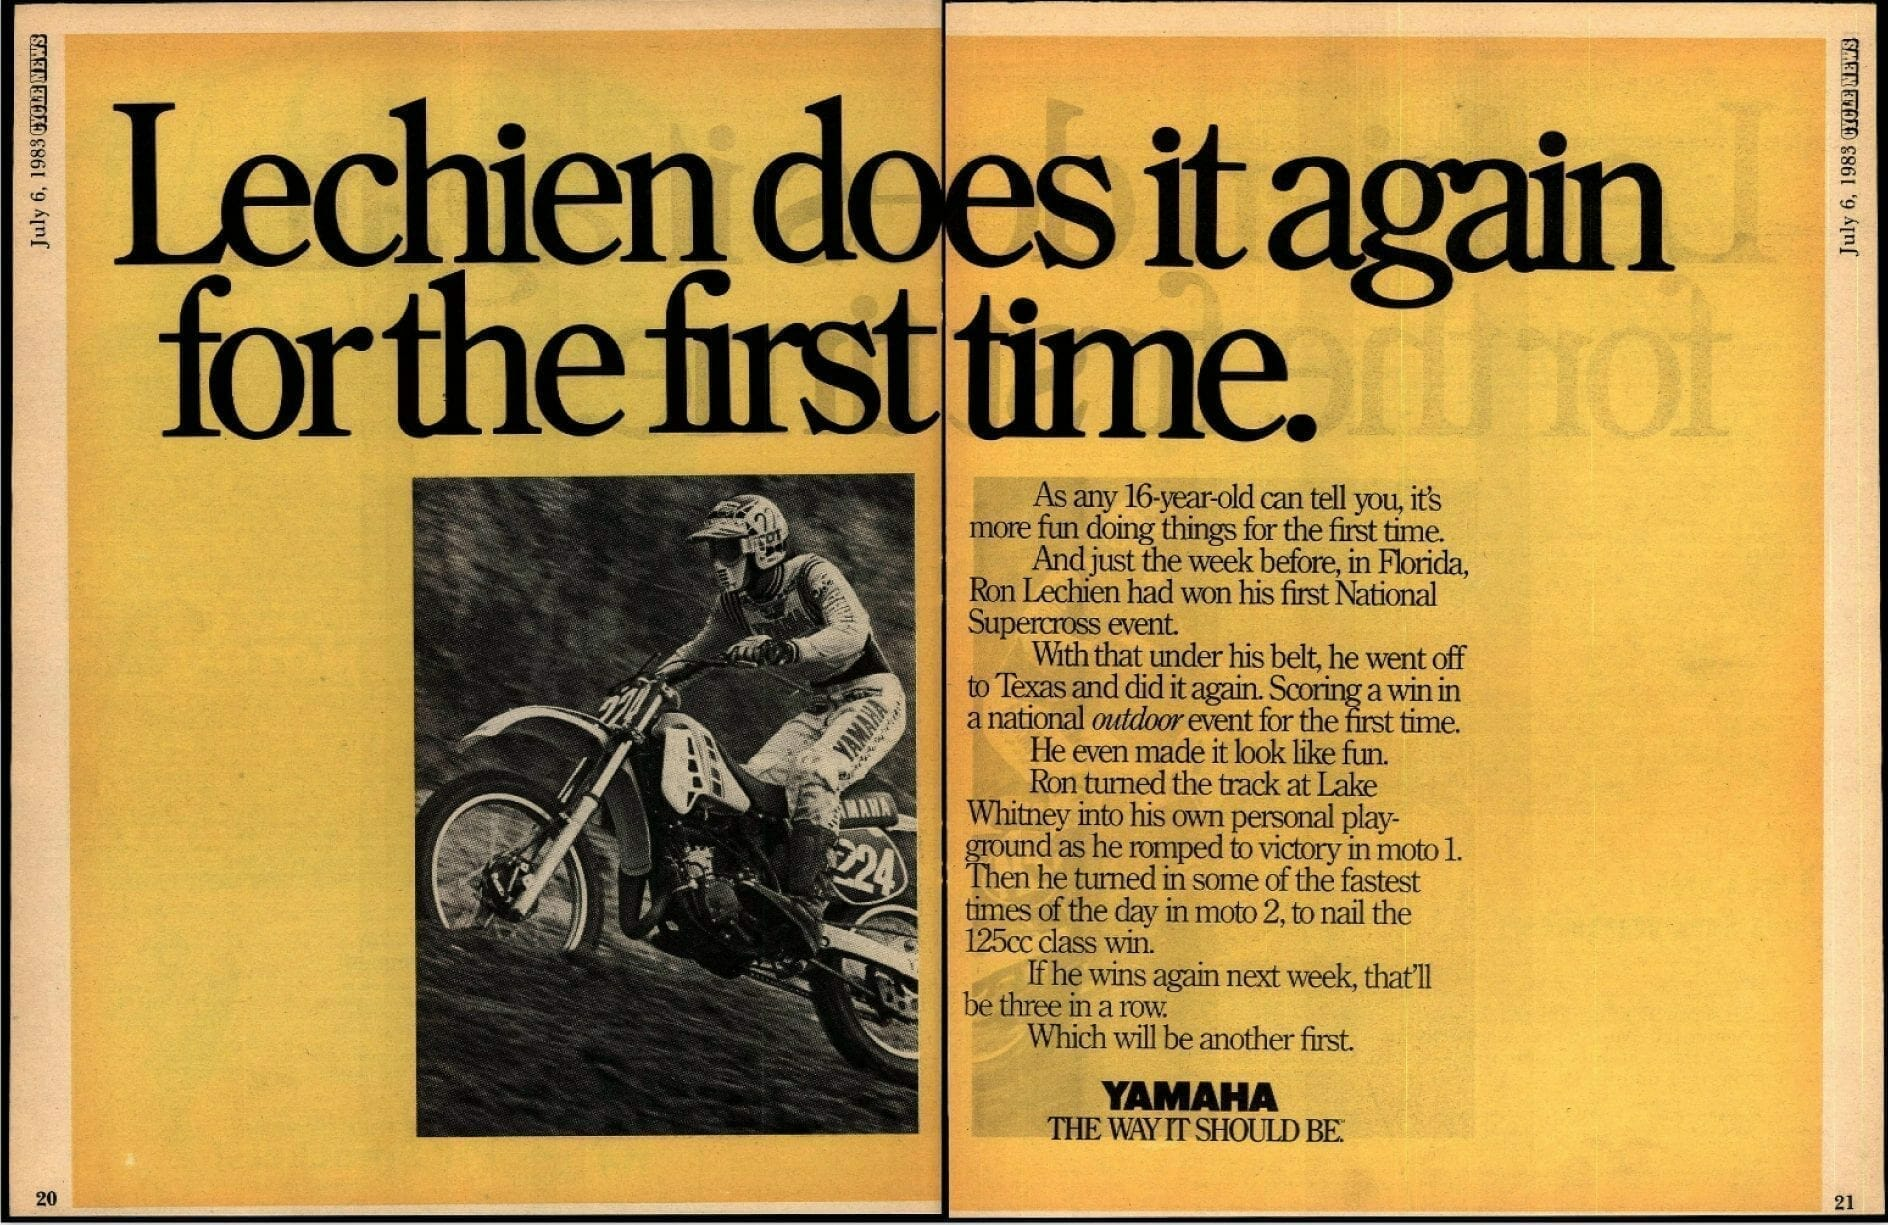 Cycle News win ad 1983 Lake Whitney, Texas